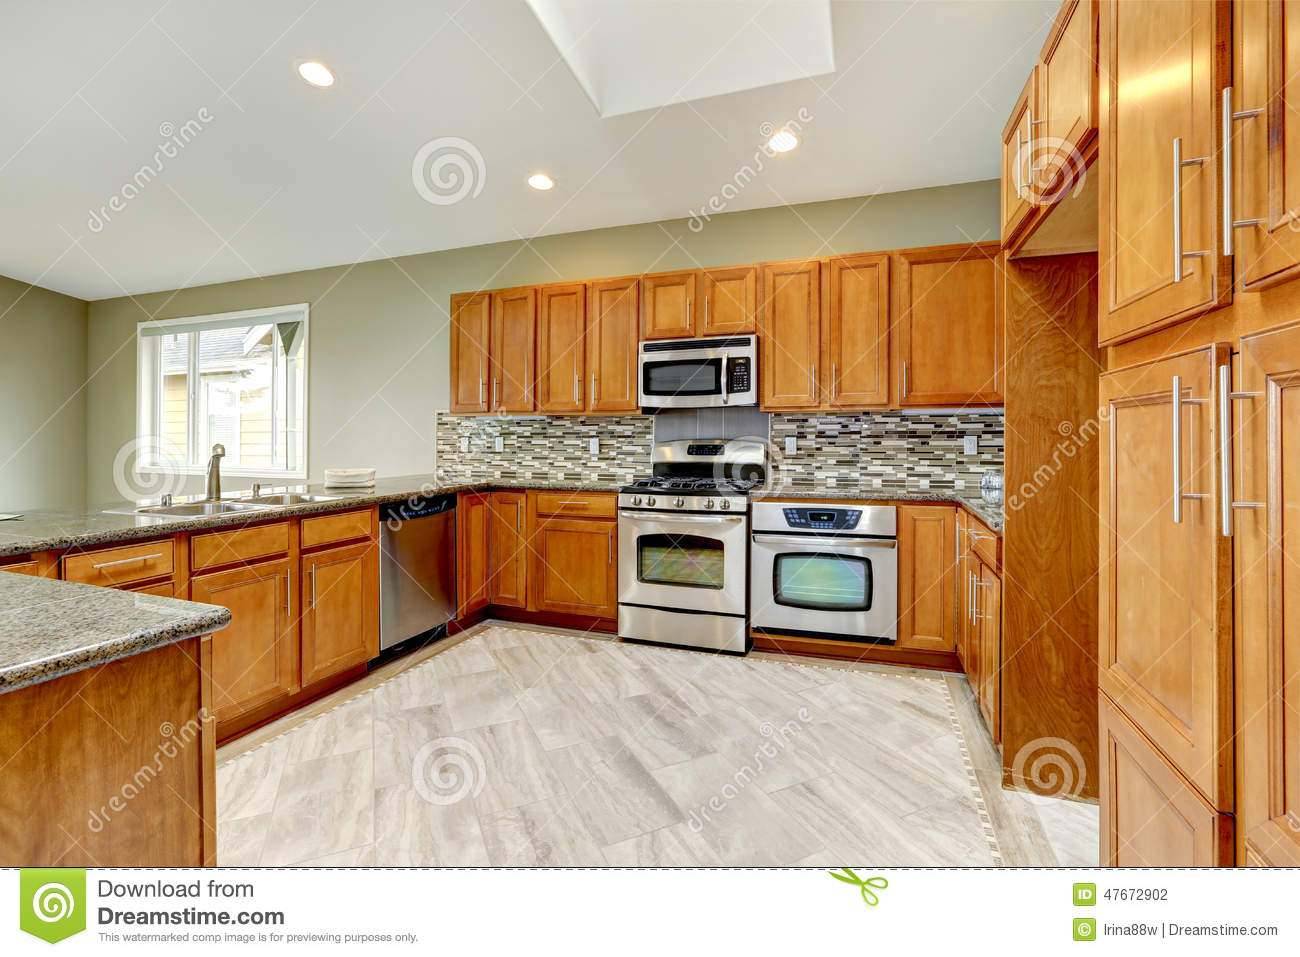 Luxury kitchen room with bright brown cabinets stock photo image 47672902 - Luxury kitchen room ...